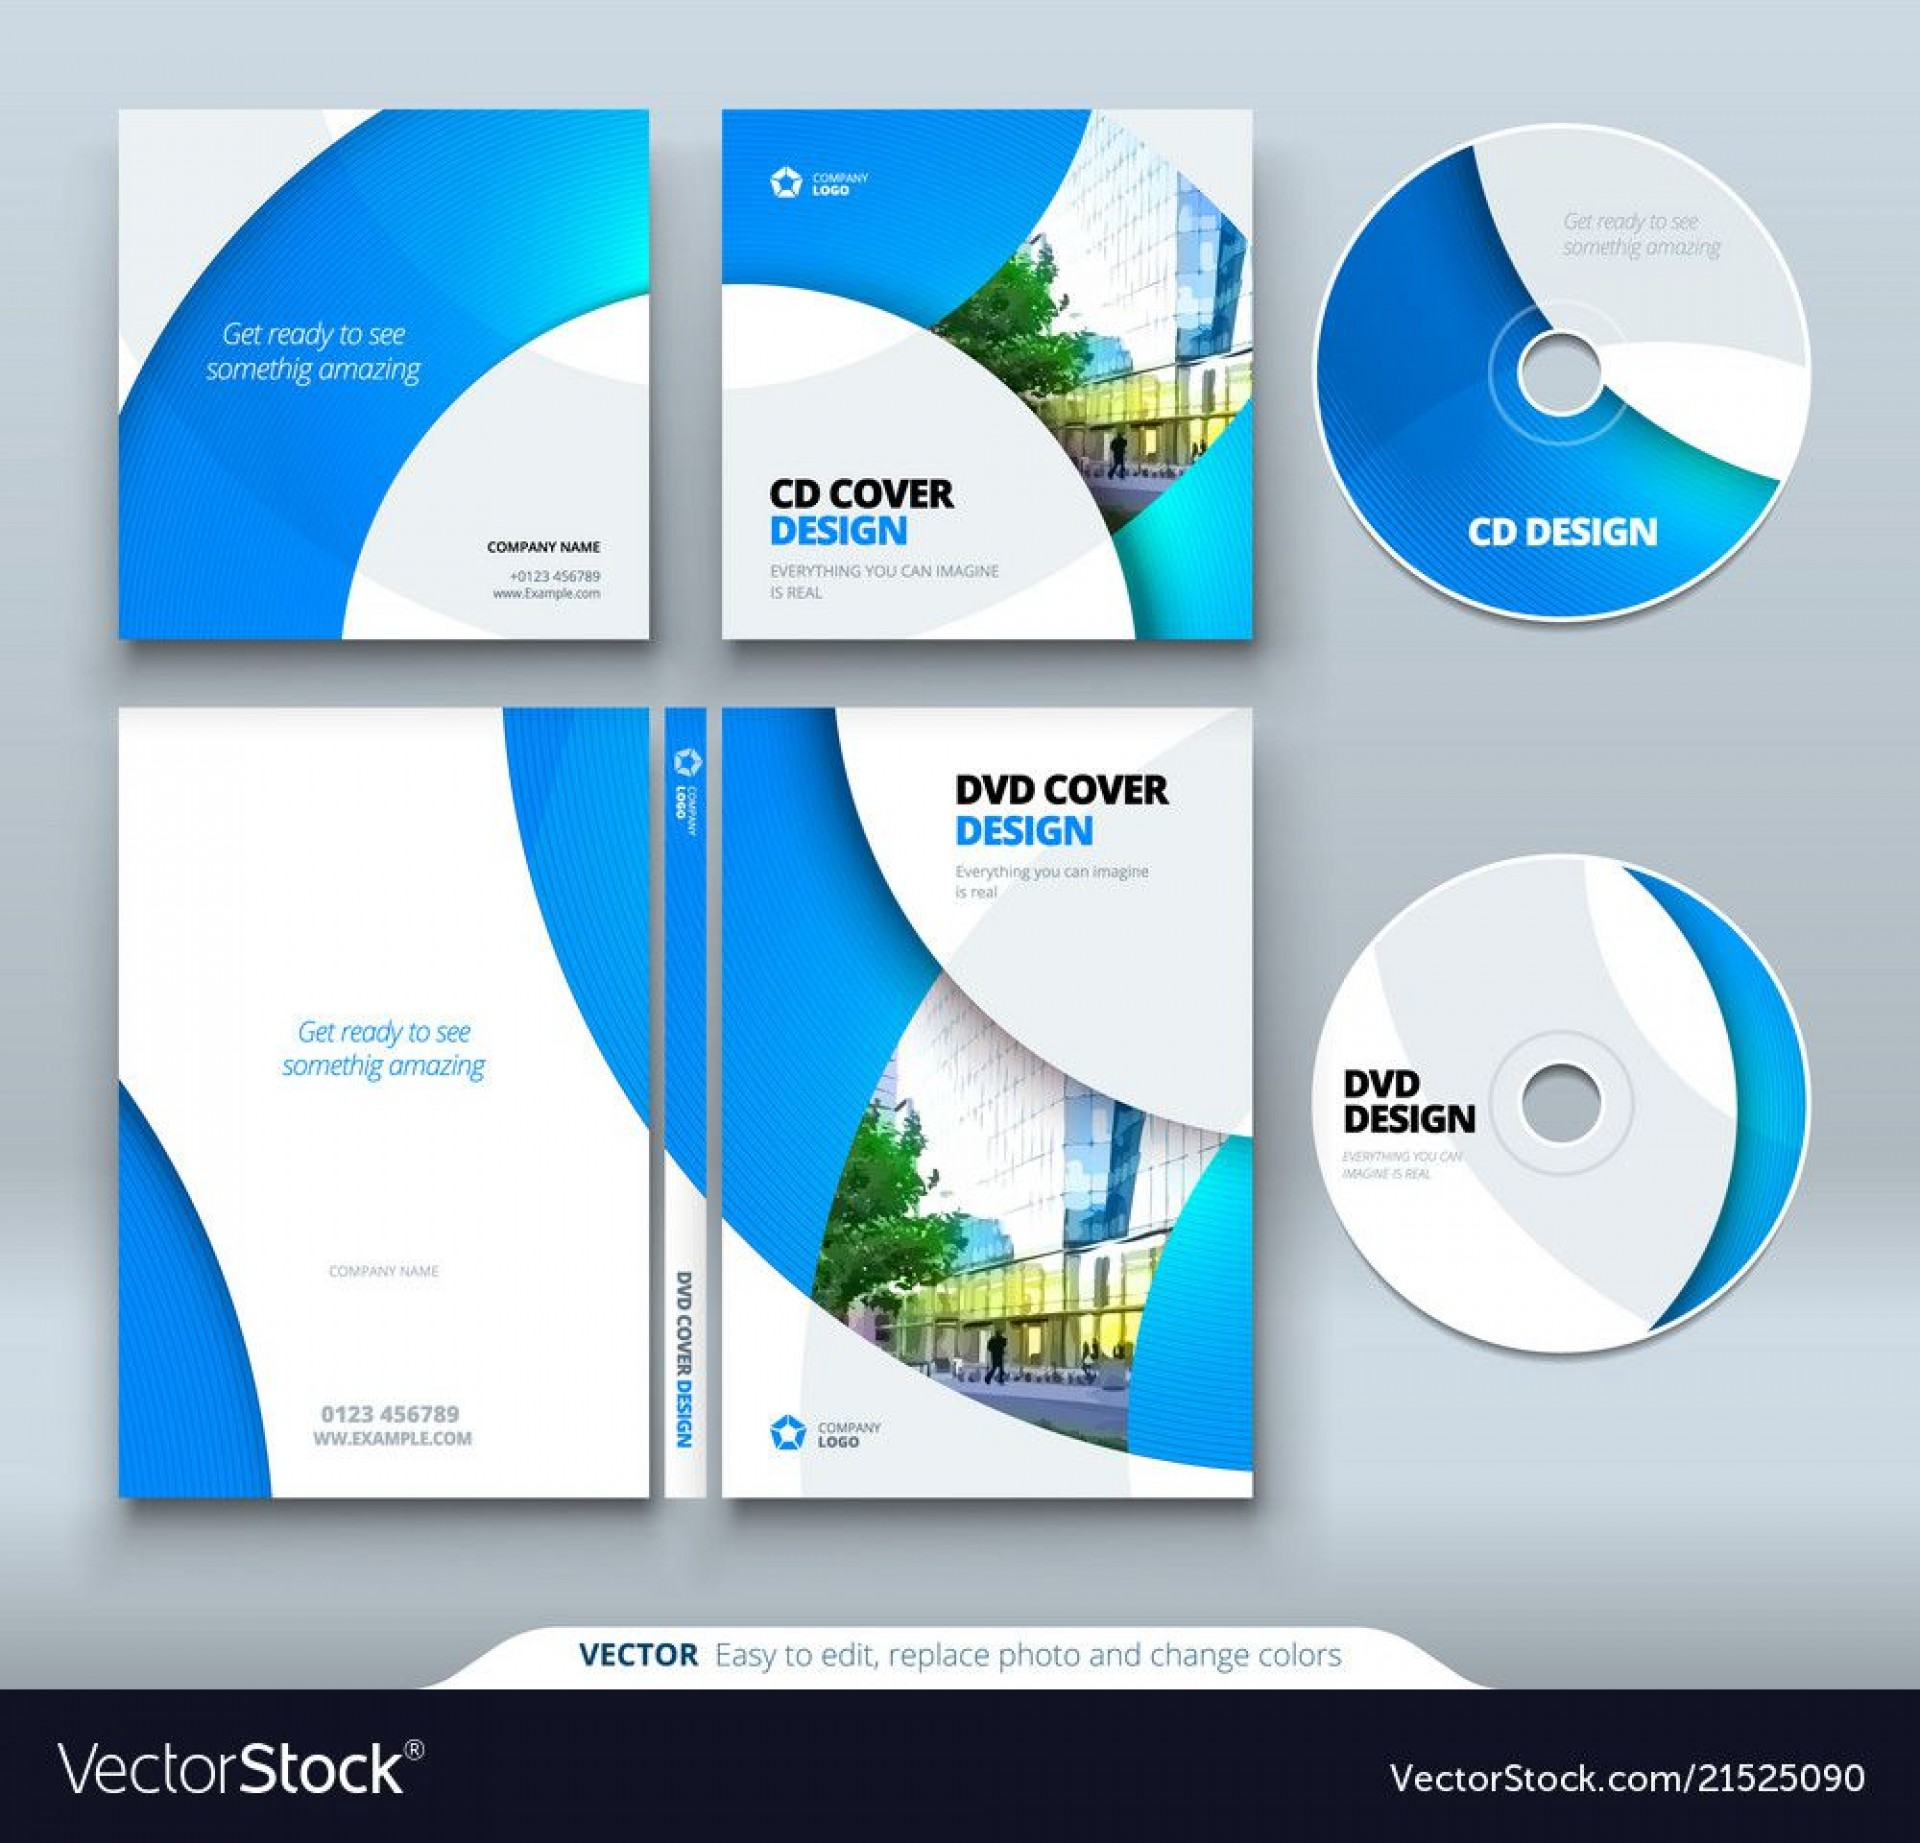 009 Stunning Vector Cd Cover Design Template Free Photo 1920